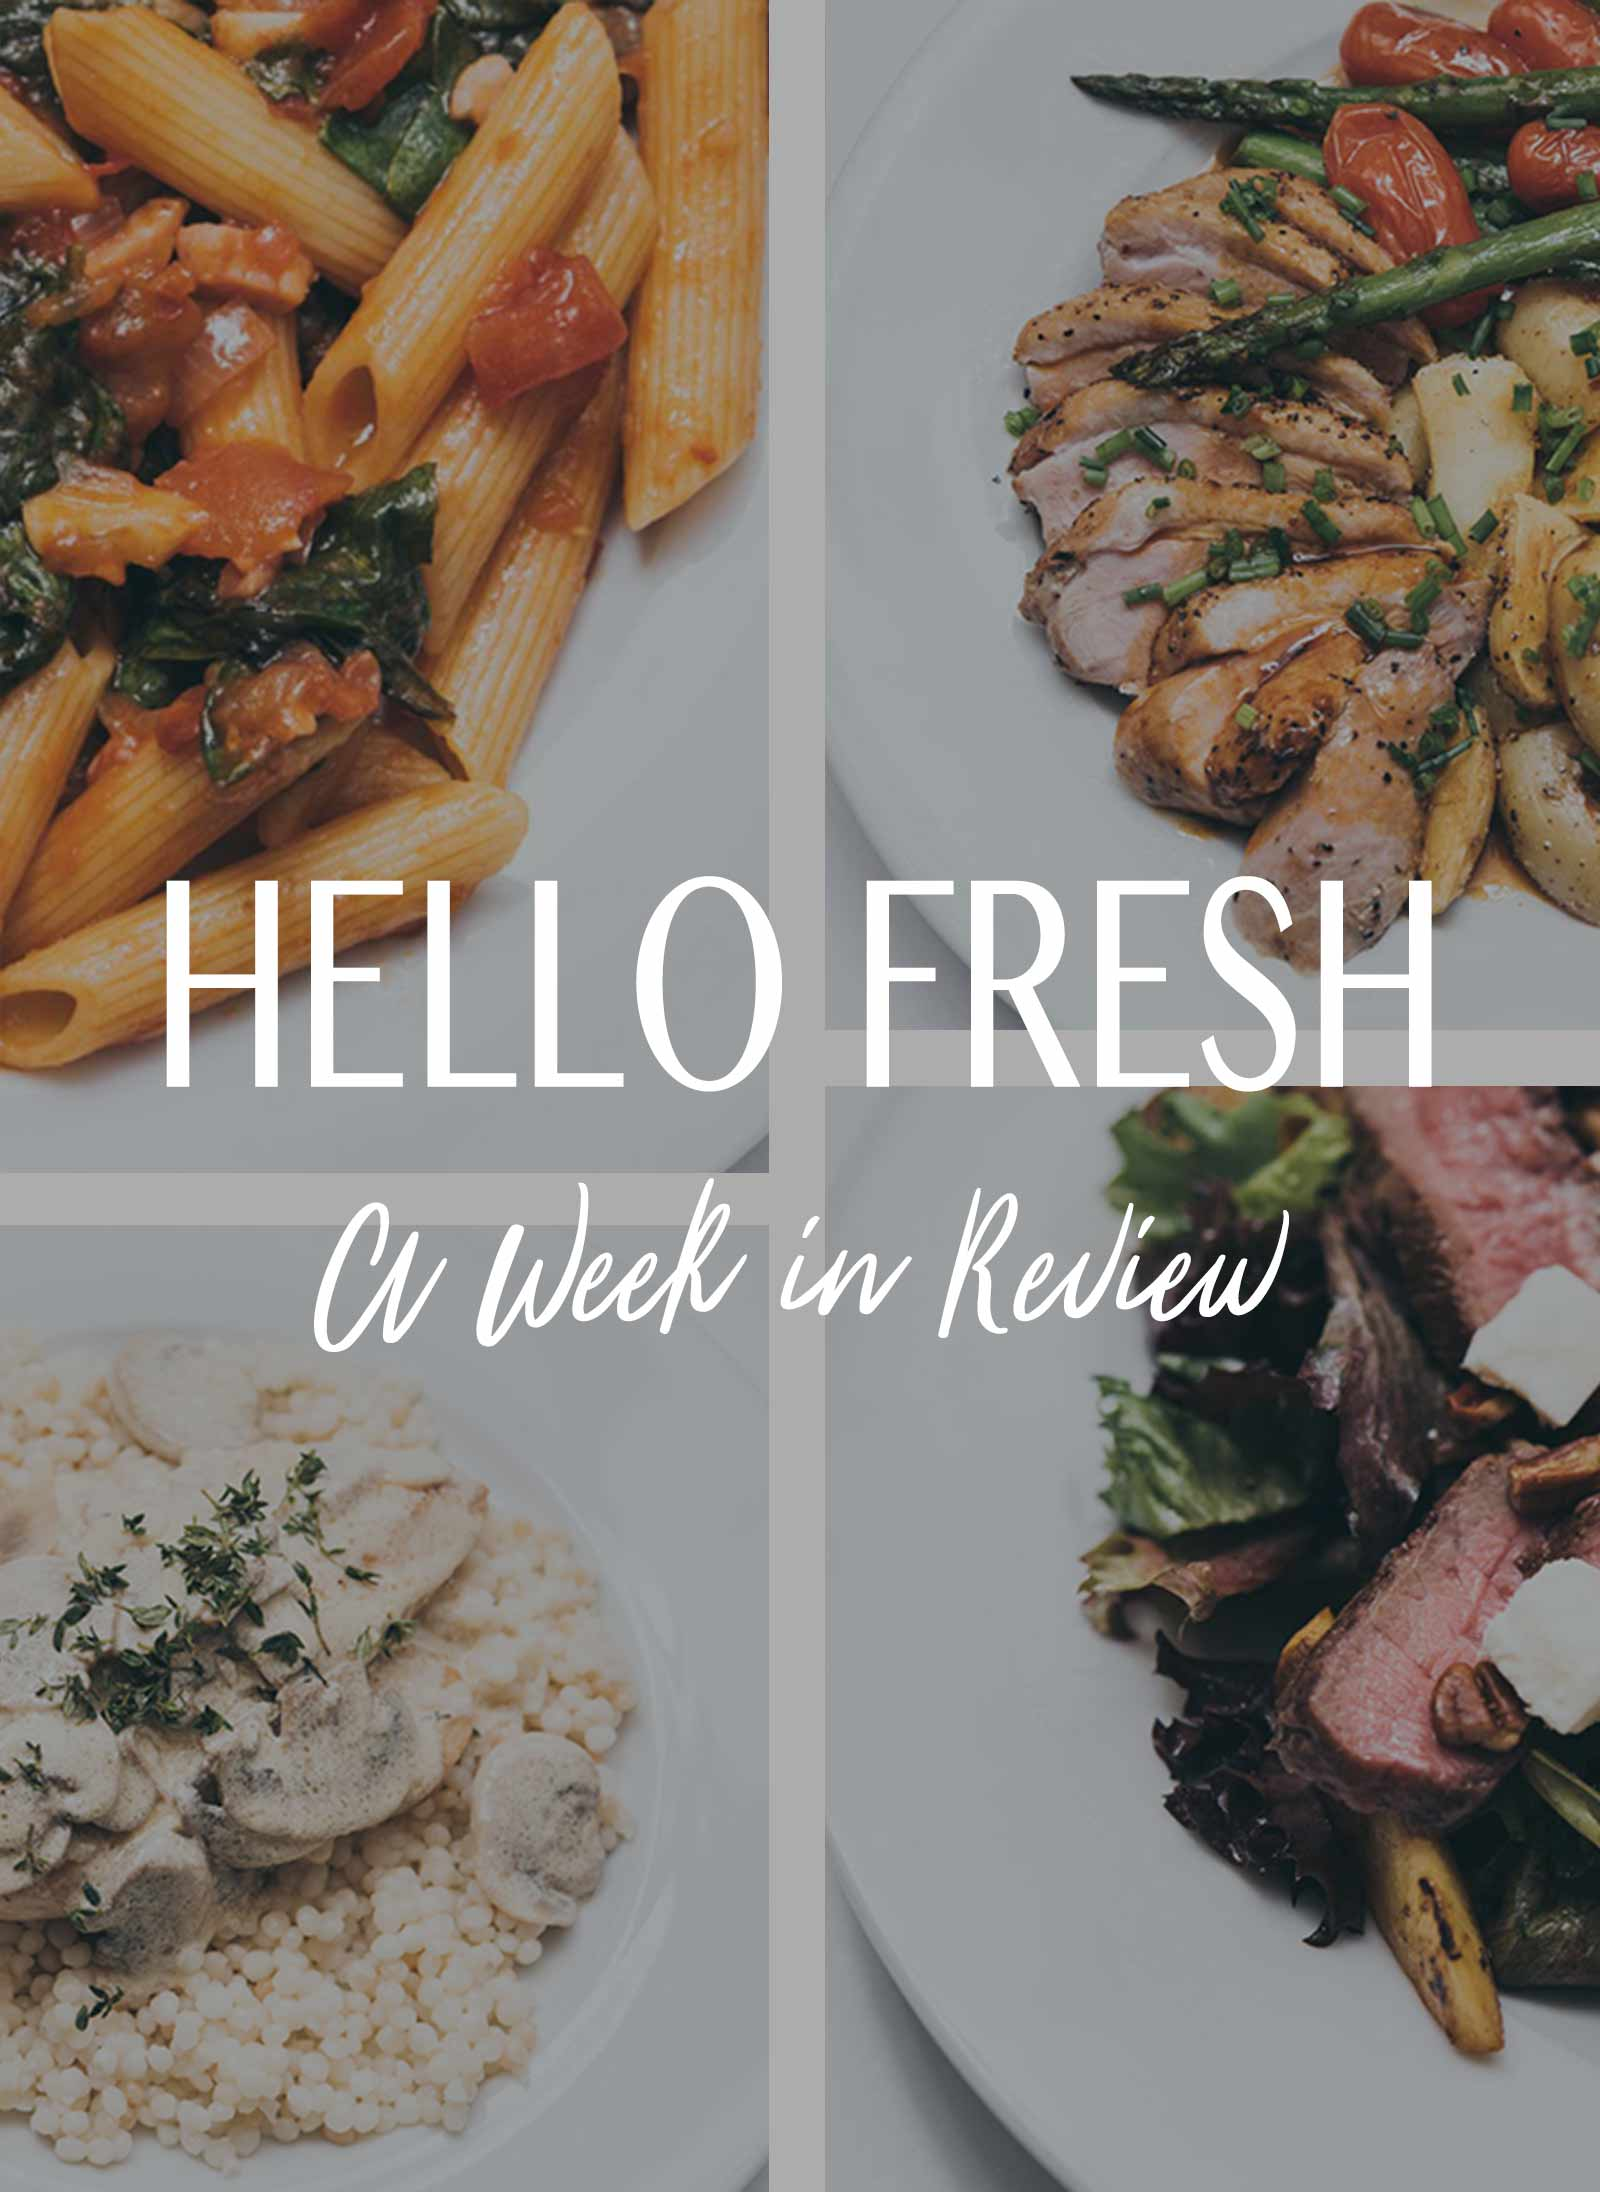 Hellofresh Meal Kit Delivery Service Outlet Coupon Reddit